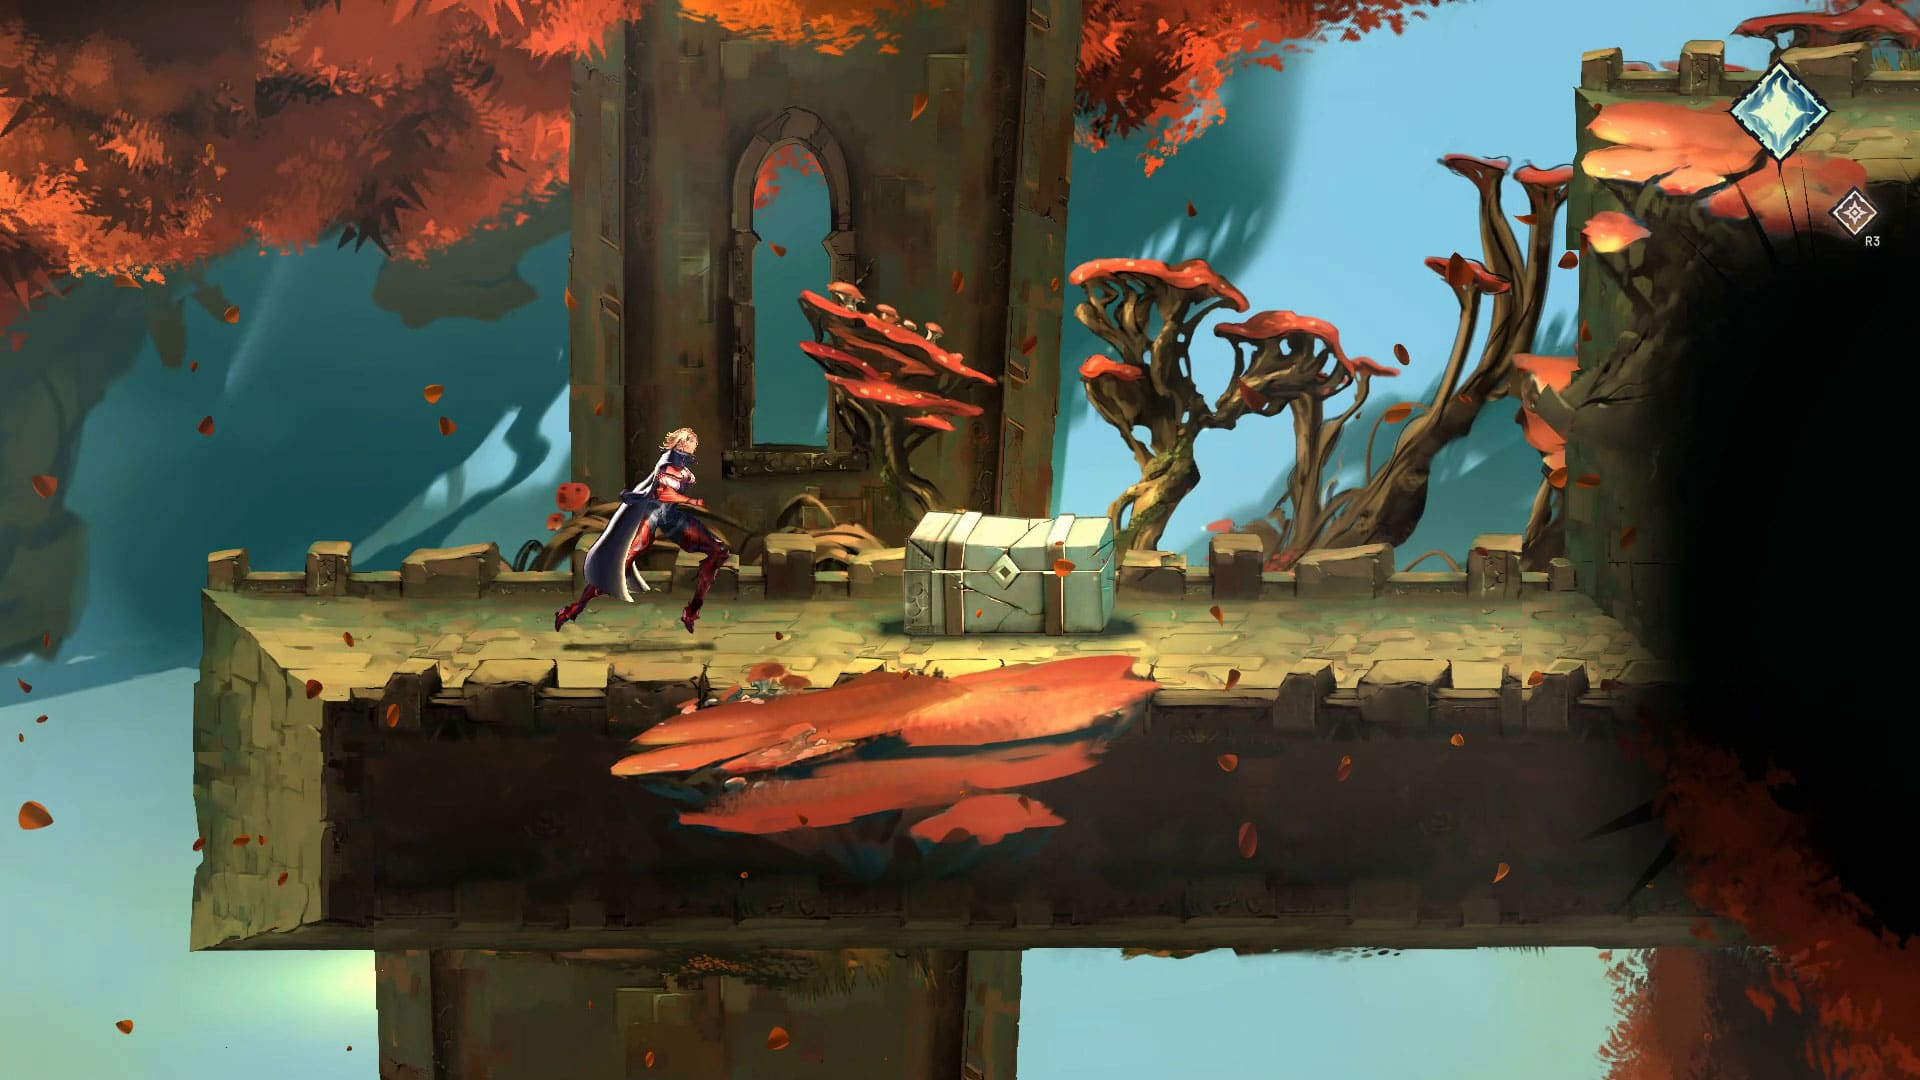 A protagonist of Astria Ascending walks through a forest of orange mushrooms, growing amidst ruined buildings.